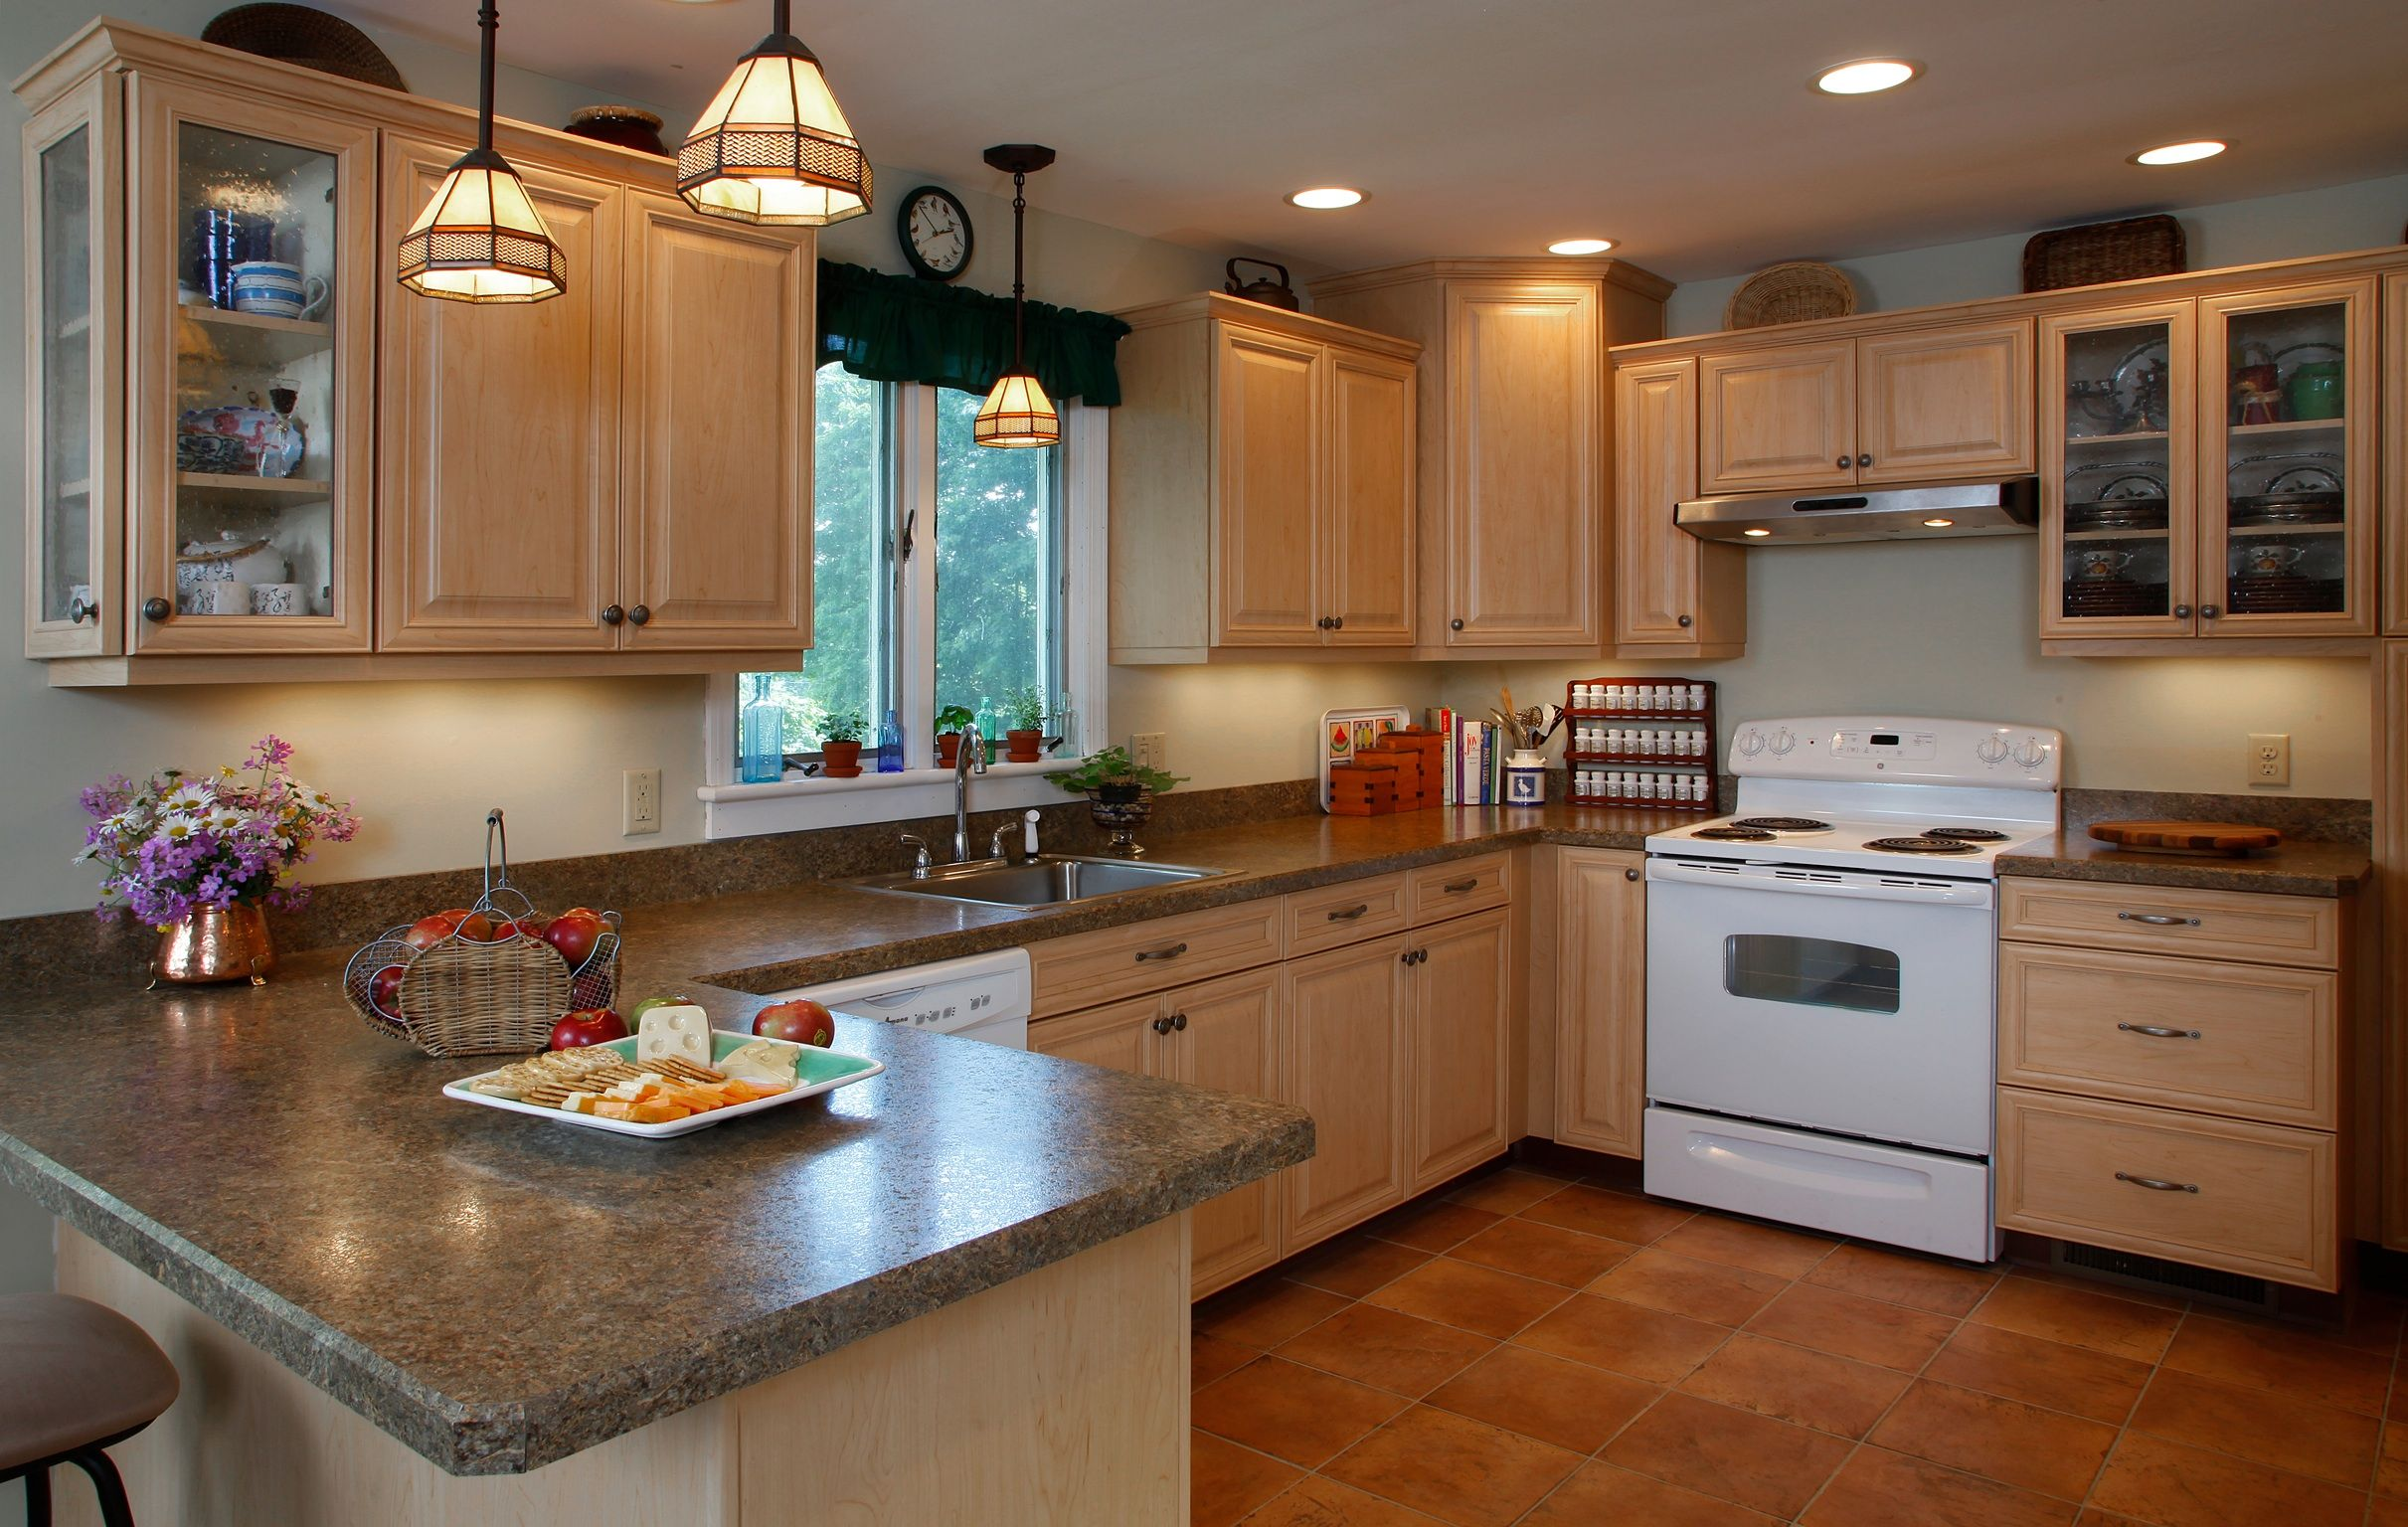 The 4 Inch Backsplash Is The Most Popular Backsplash Choice Among